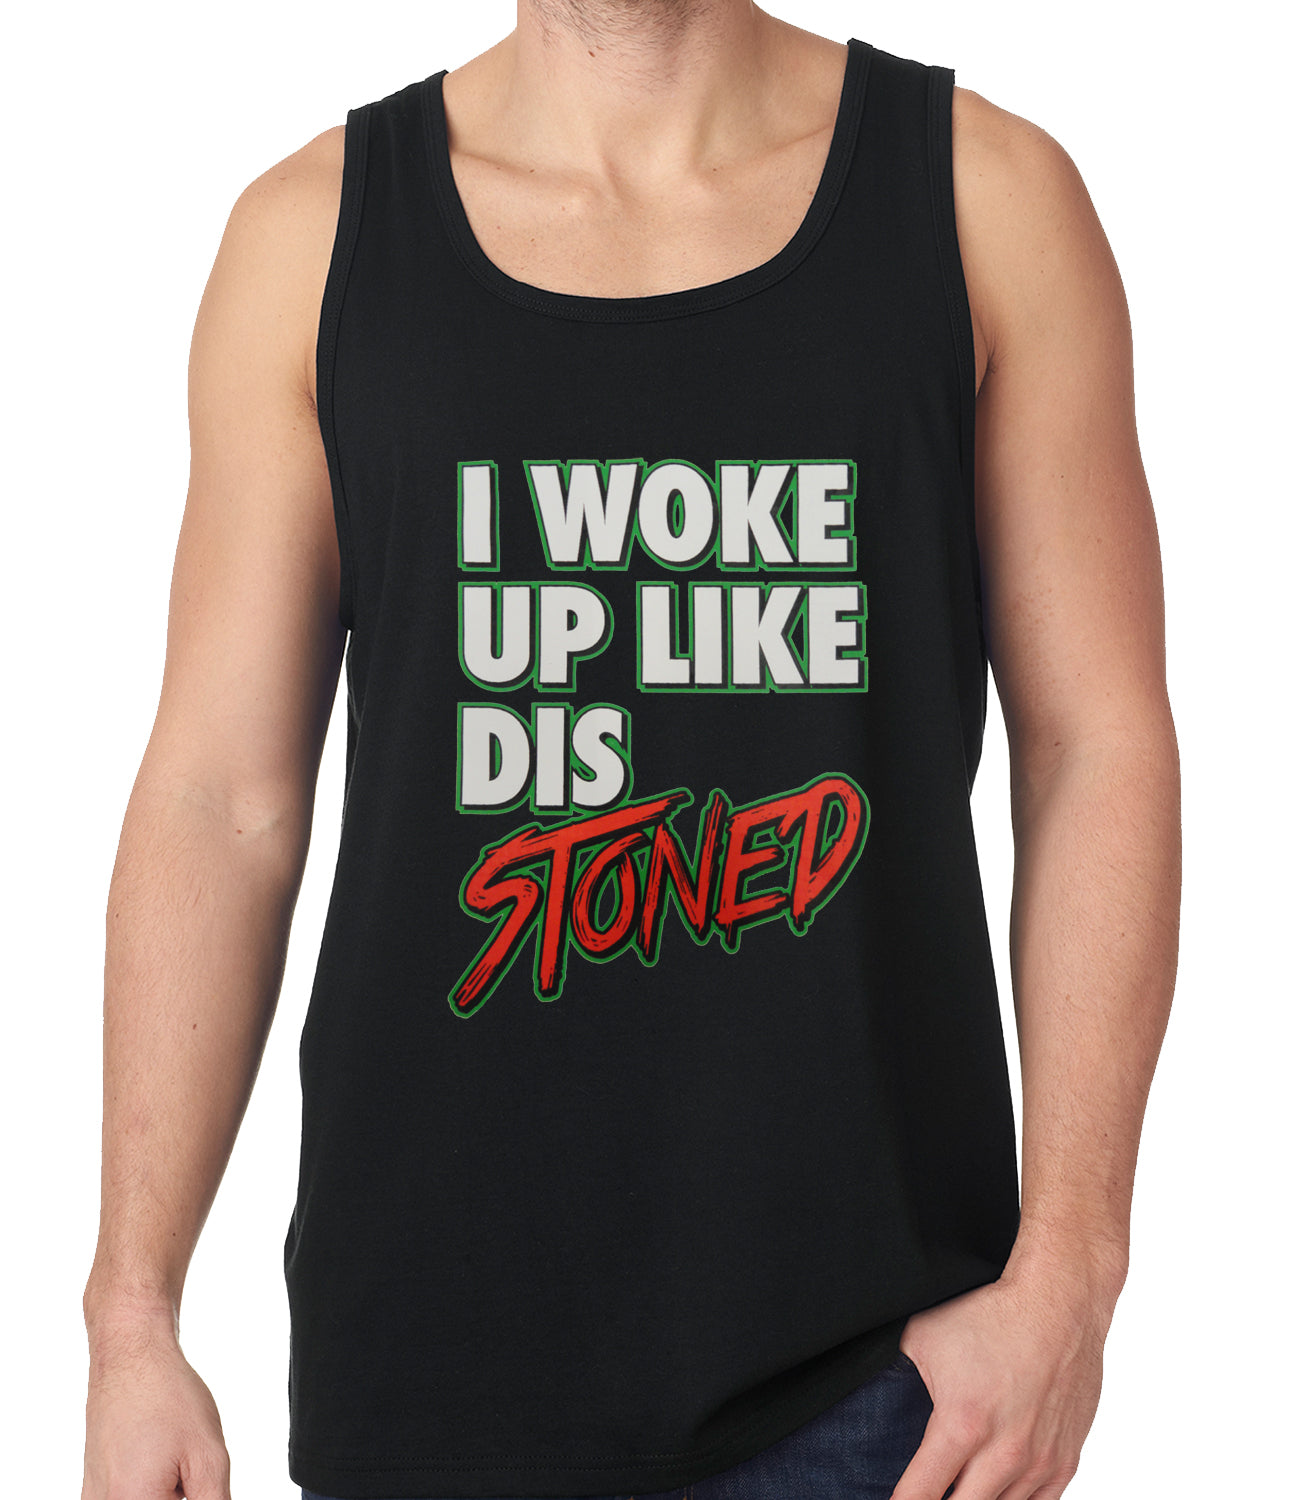 I Woke Up Like Dis, Stoned Tank Top